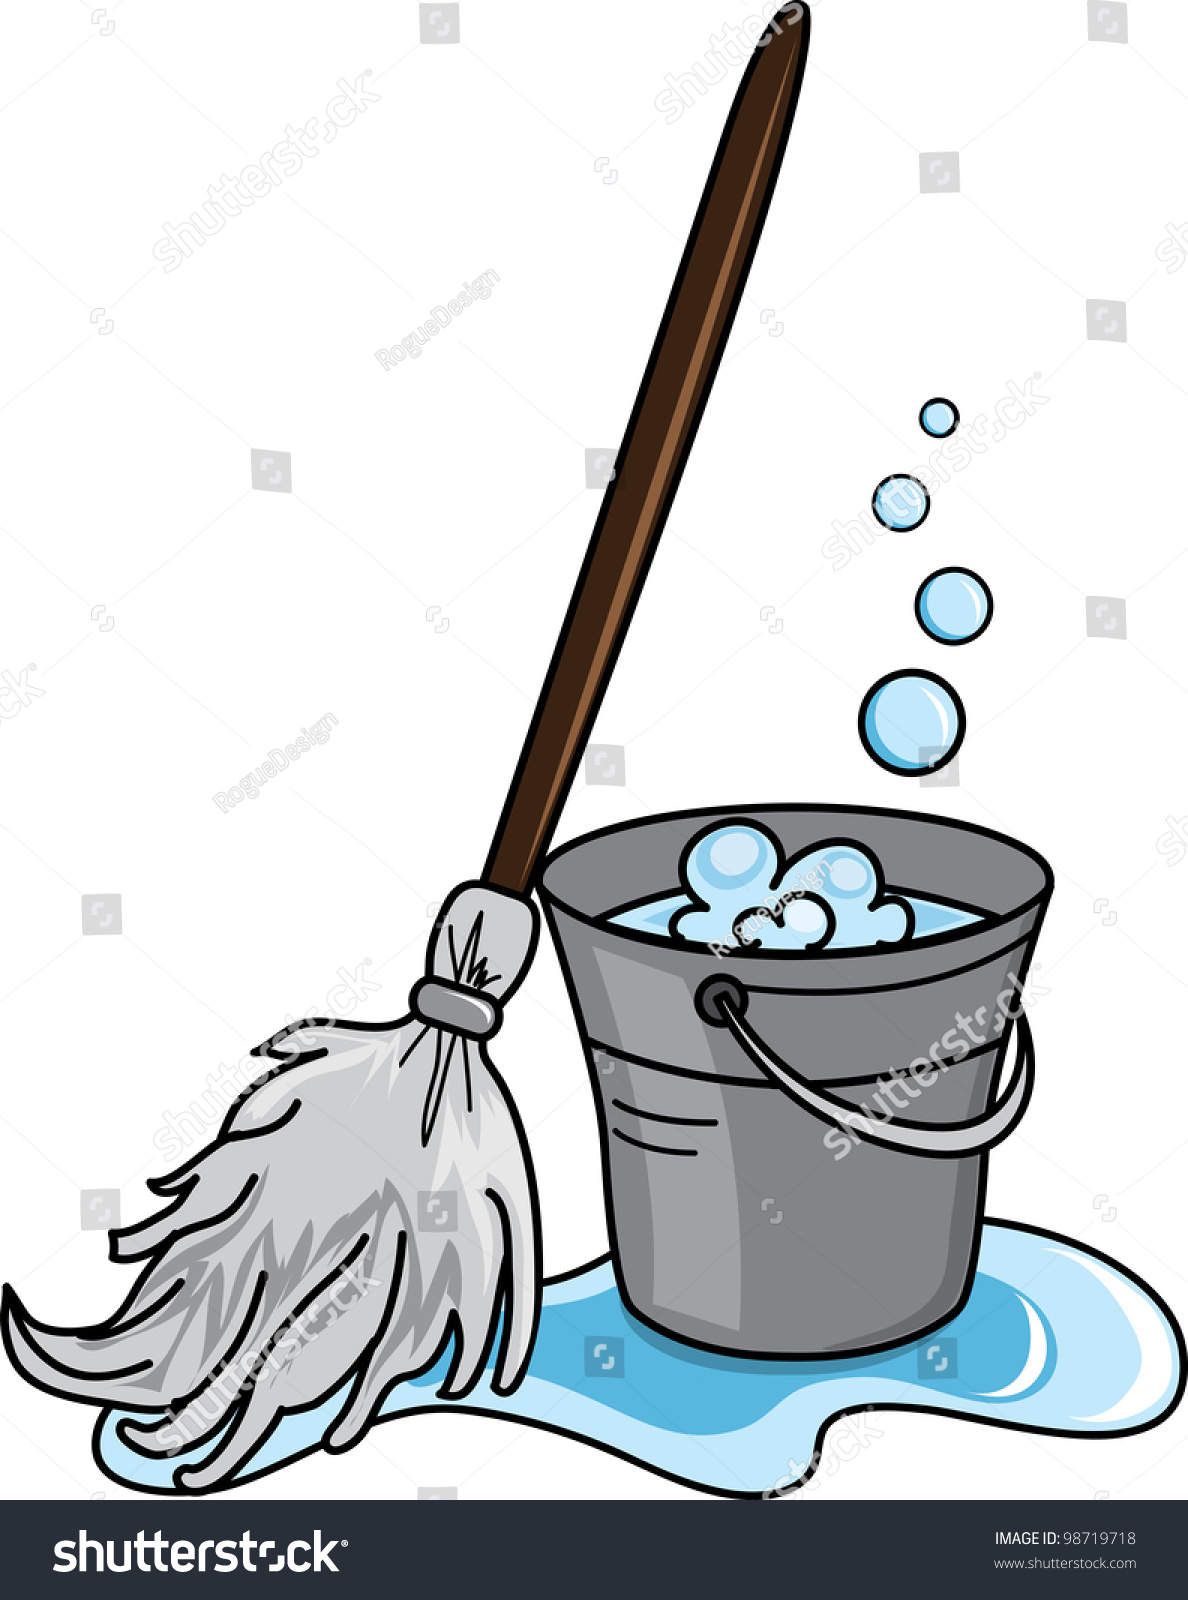 Clipart mop 7 » Clipart Station.